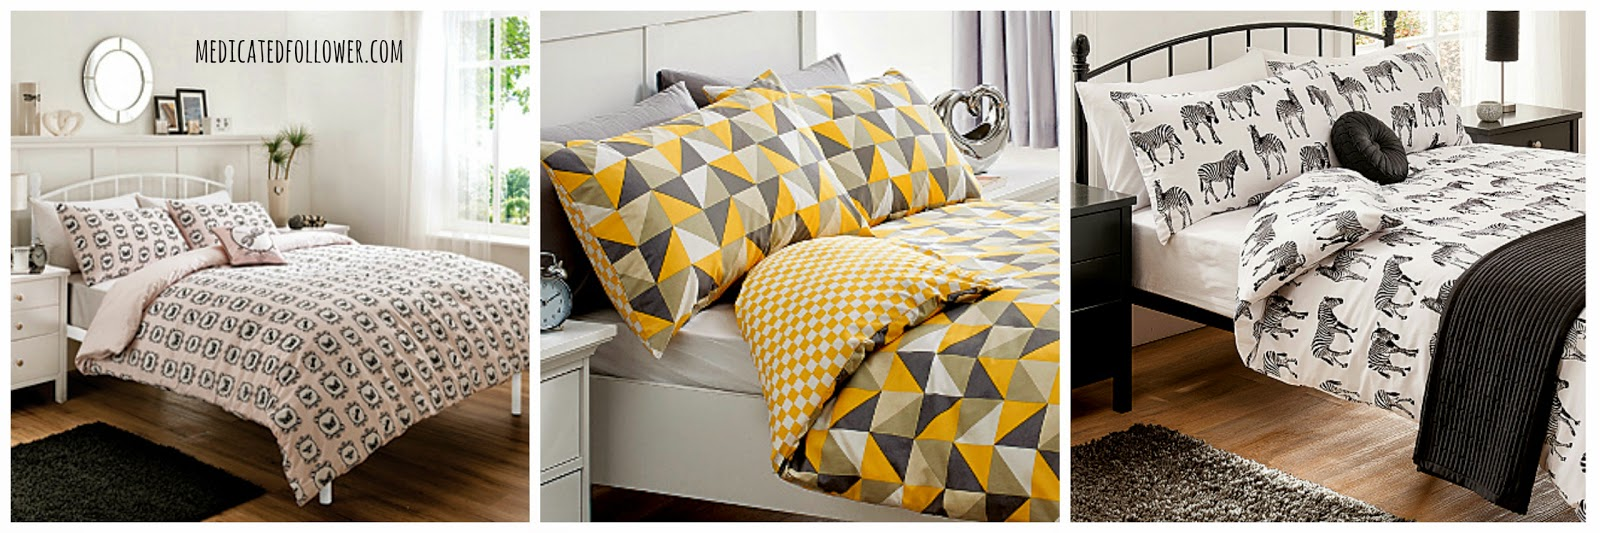 Duvet covers from George at Asda, Geo, Monochrome, Medicated Follower of Fashion